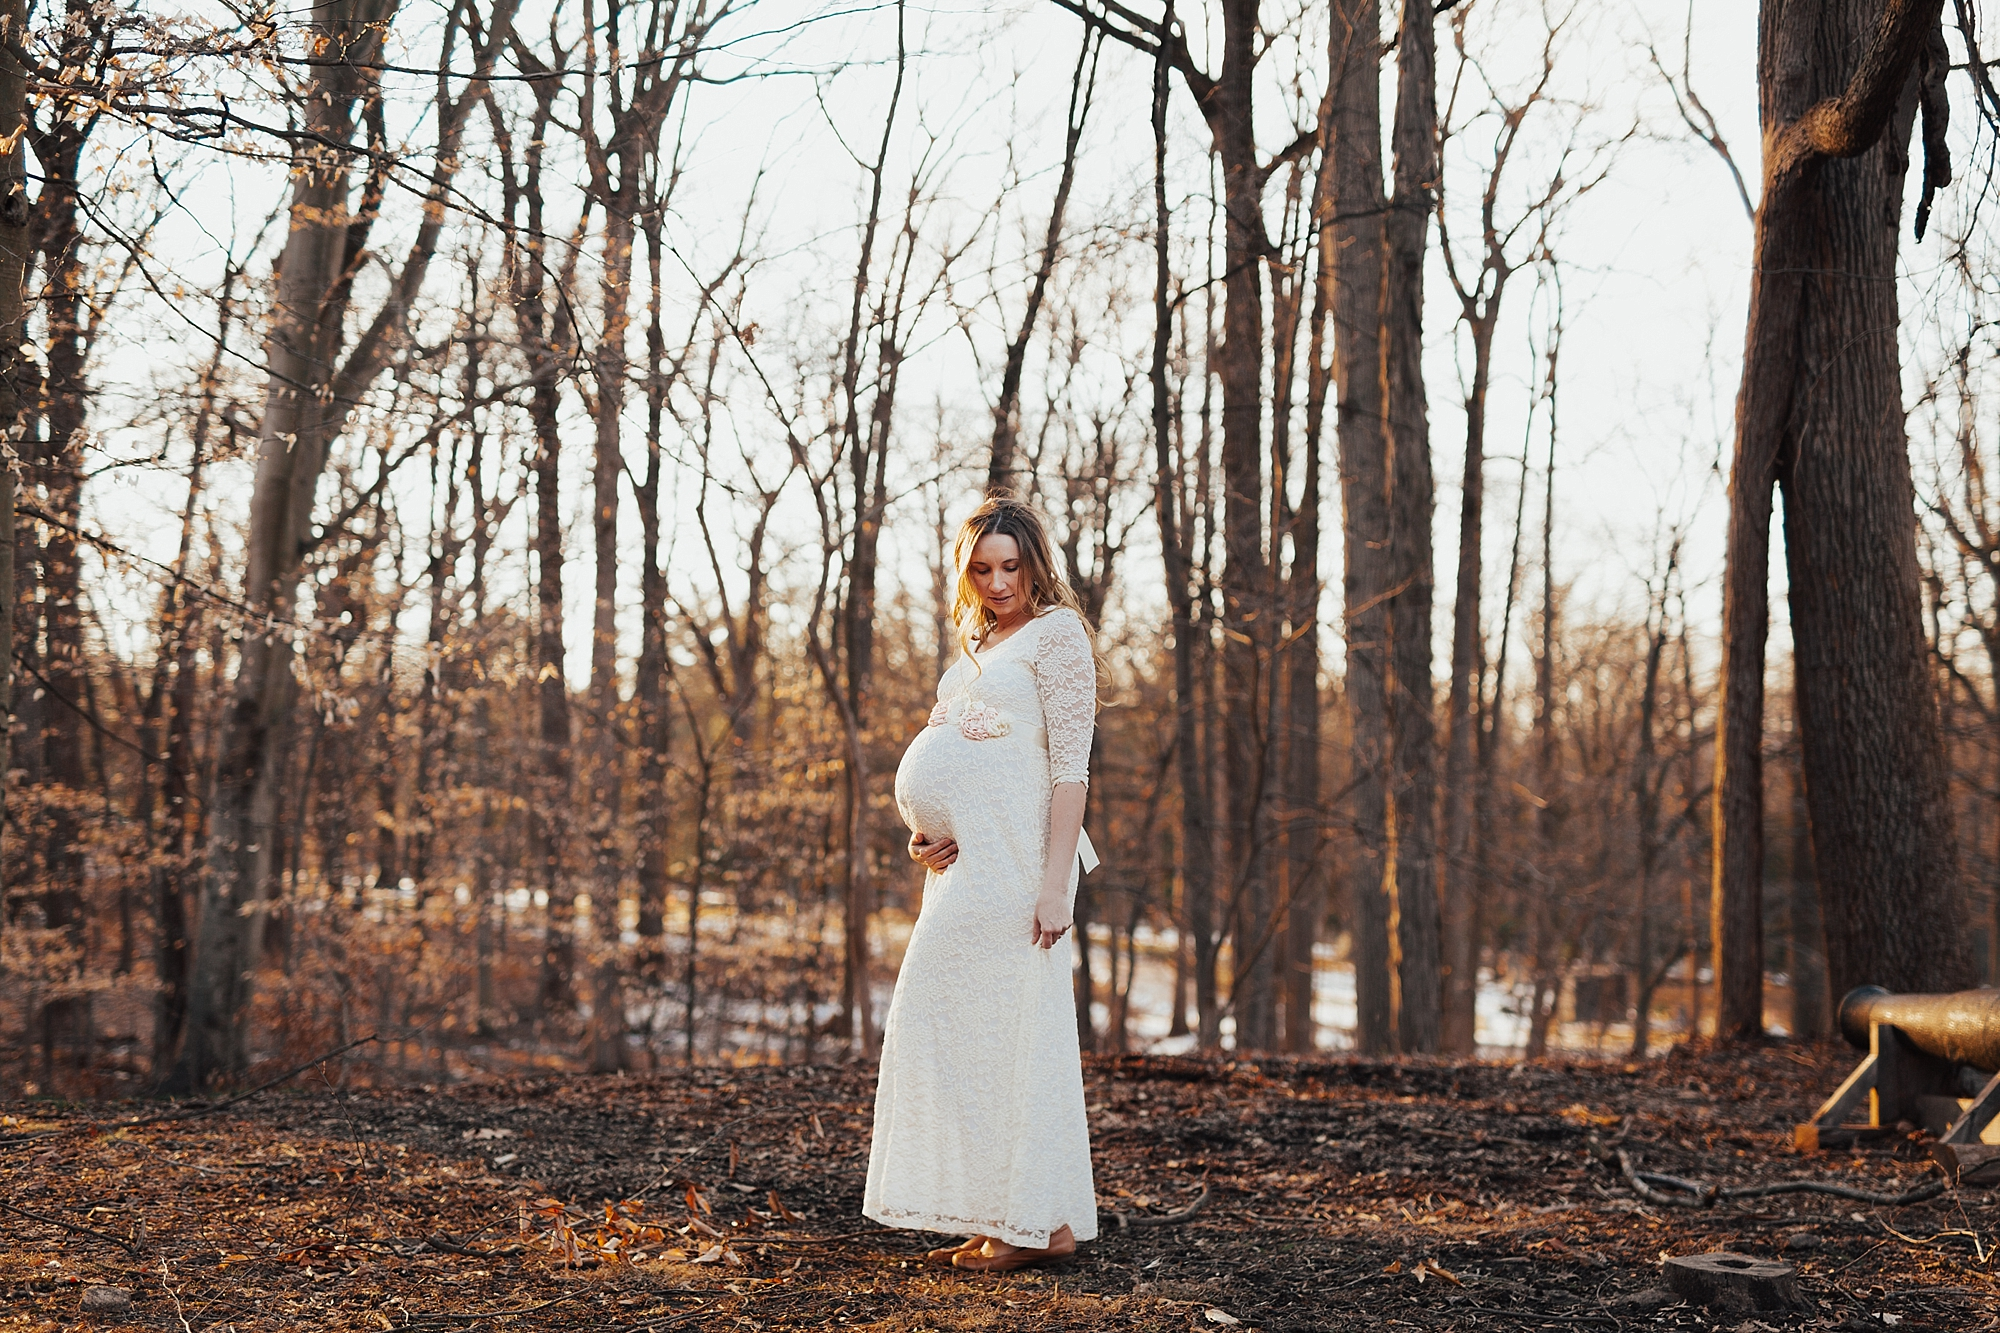 Joe_Mac_Creative_Maternity_Wedding_Engagements_Photography_Philadelphia_Valley_Forge__0040.jpg